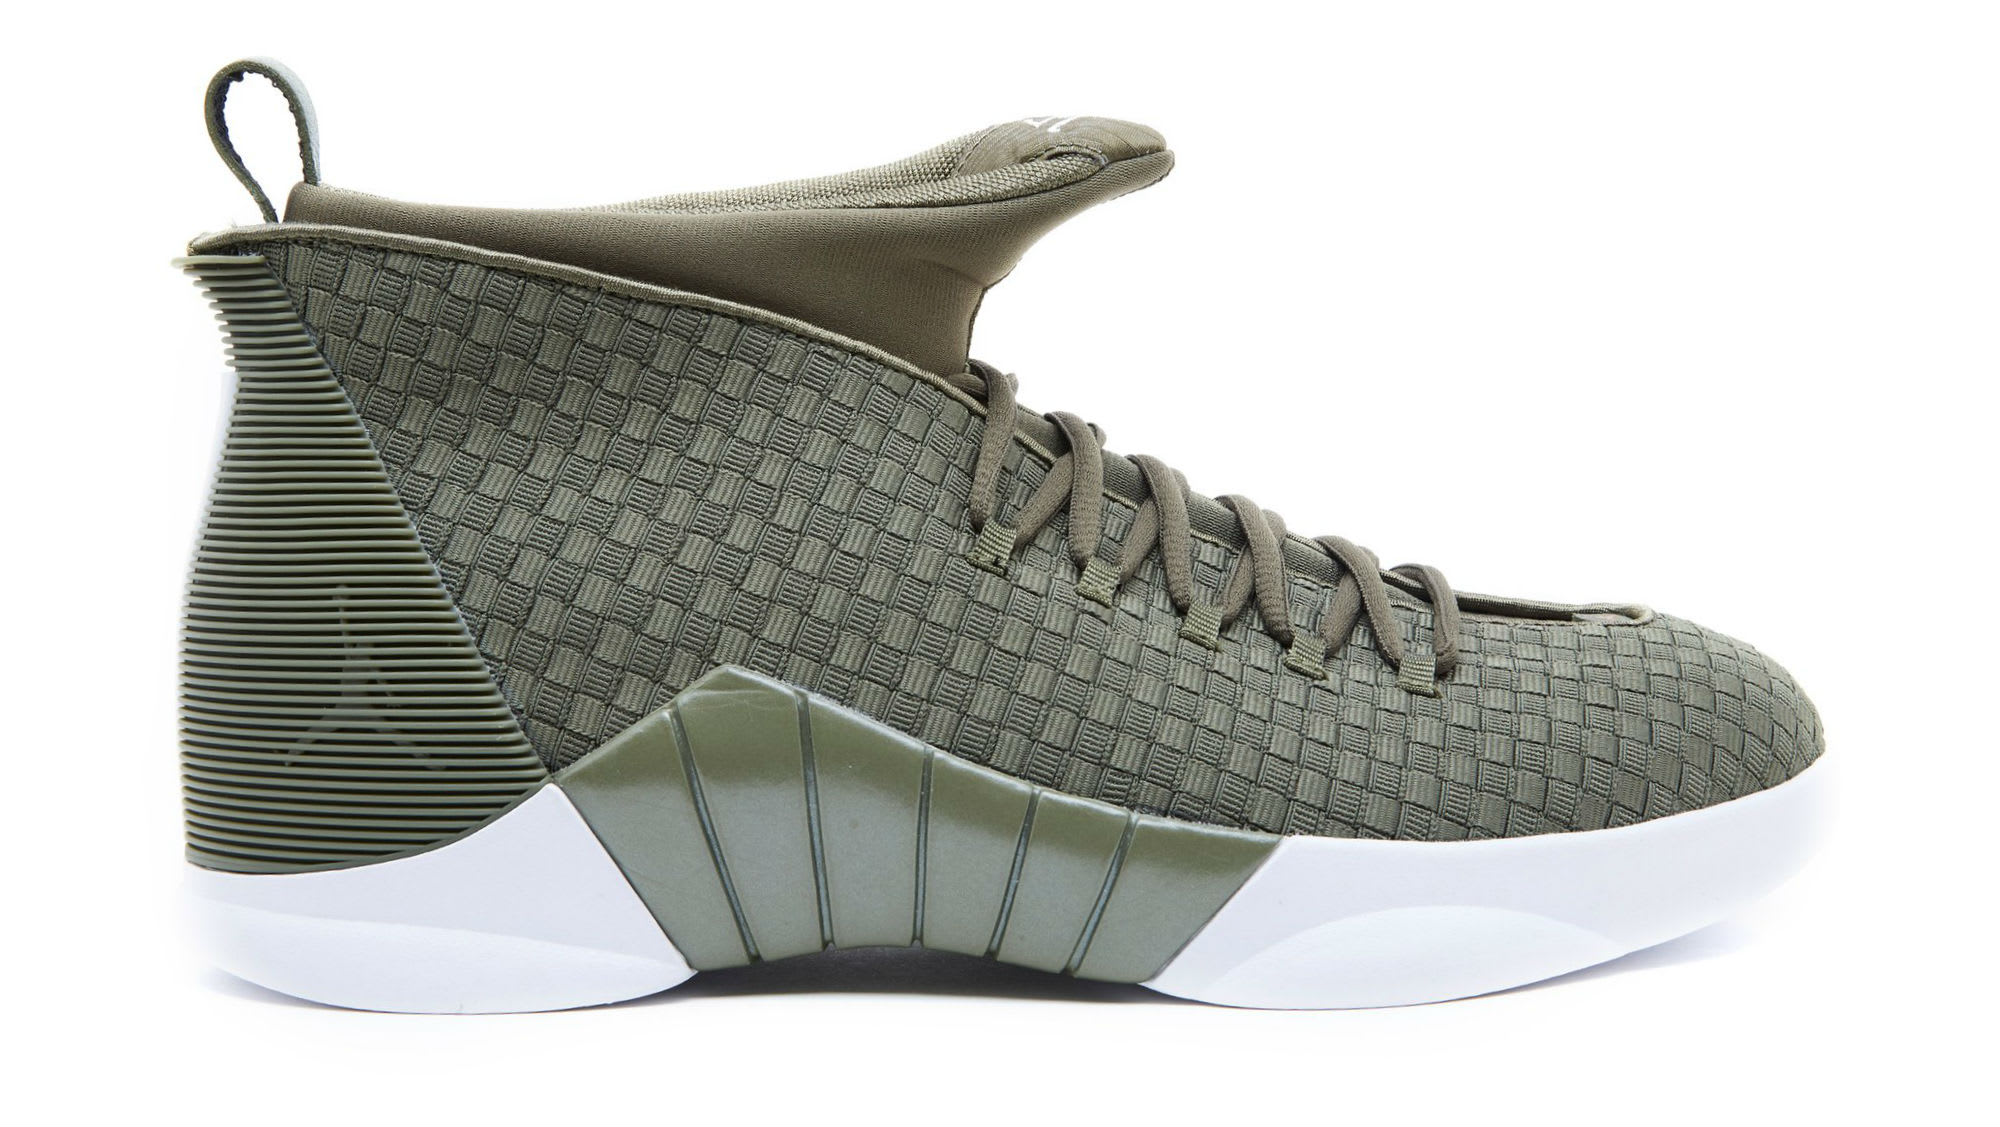 792a69aa742f PSNY x Air Jordan 15 Olive Release Date AO2568-200